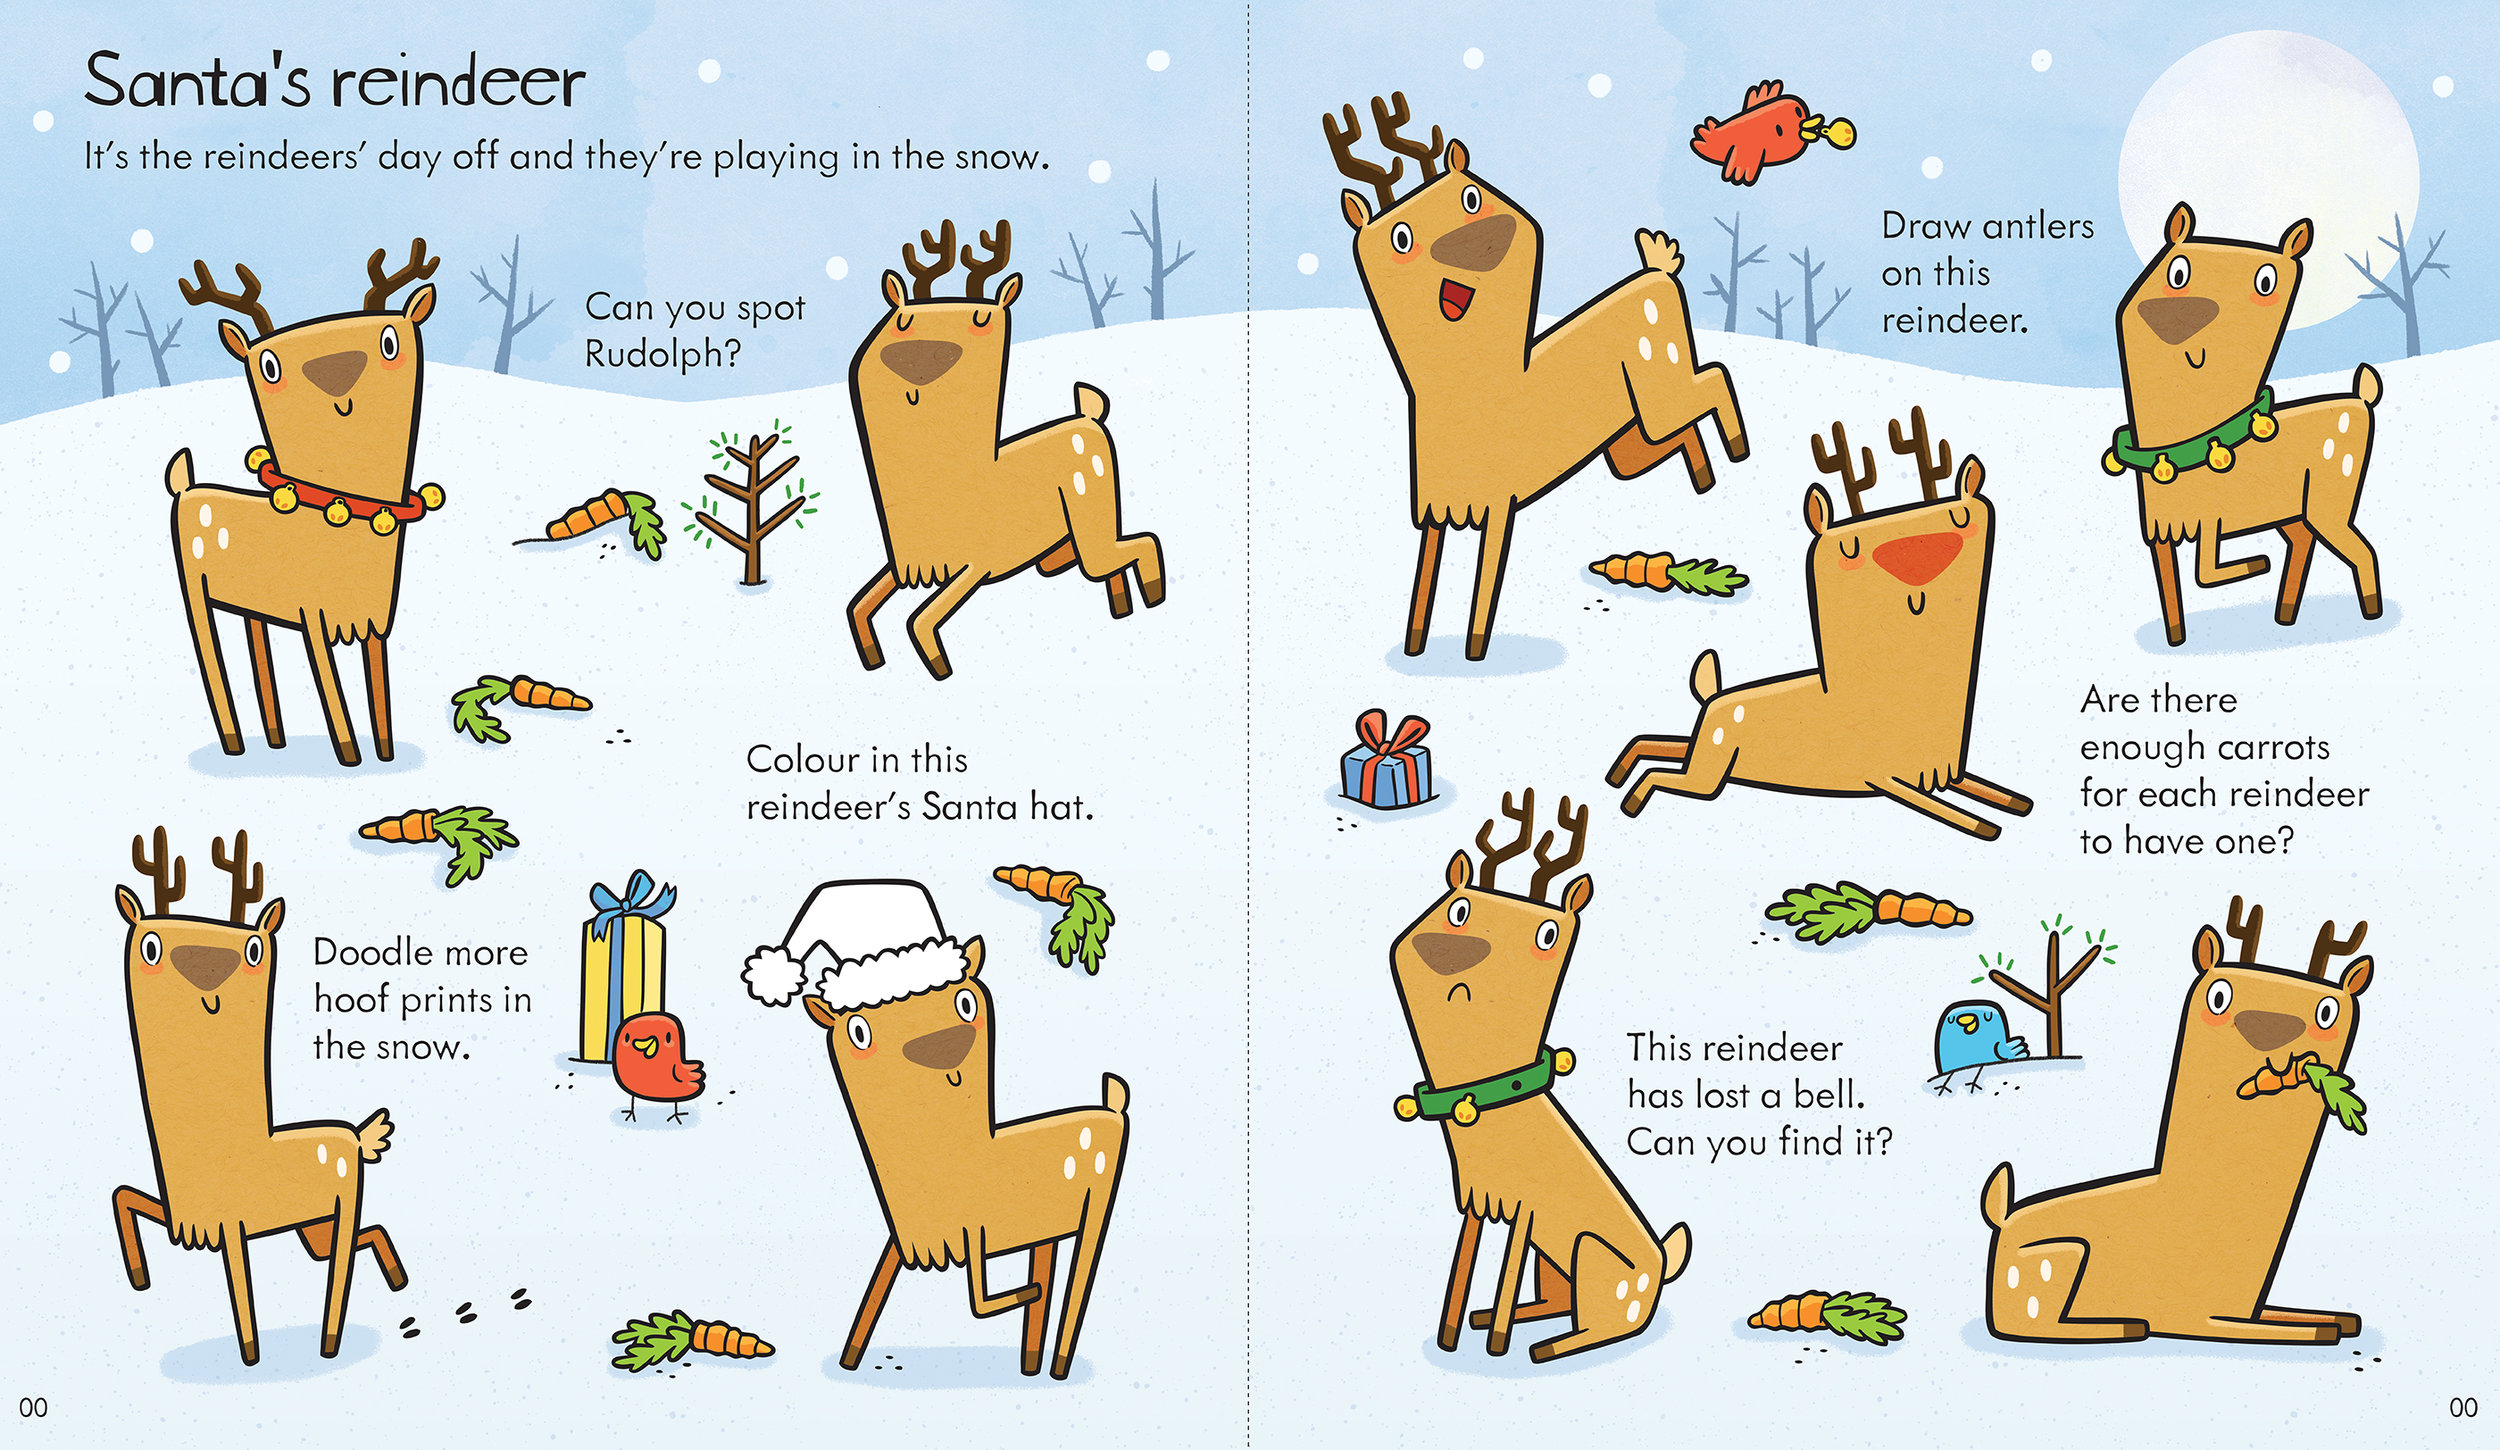 """Santa's reindeer"" was published in Usborne's  Little Children's Christmas Activity Book ."